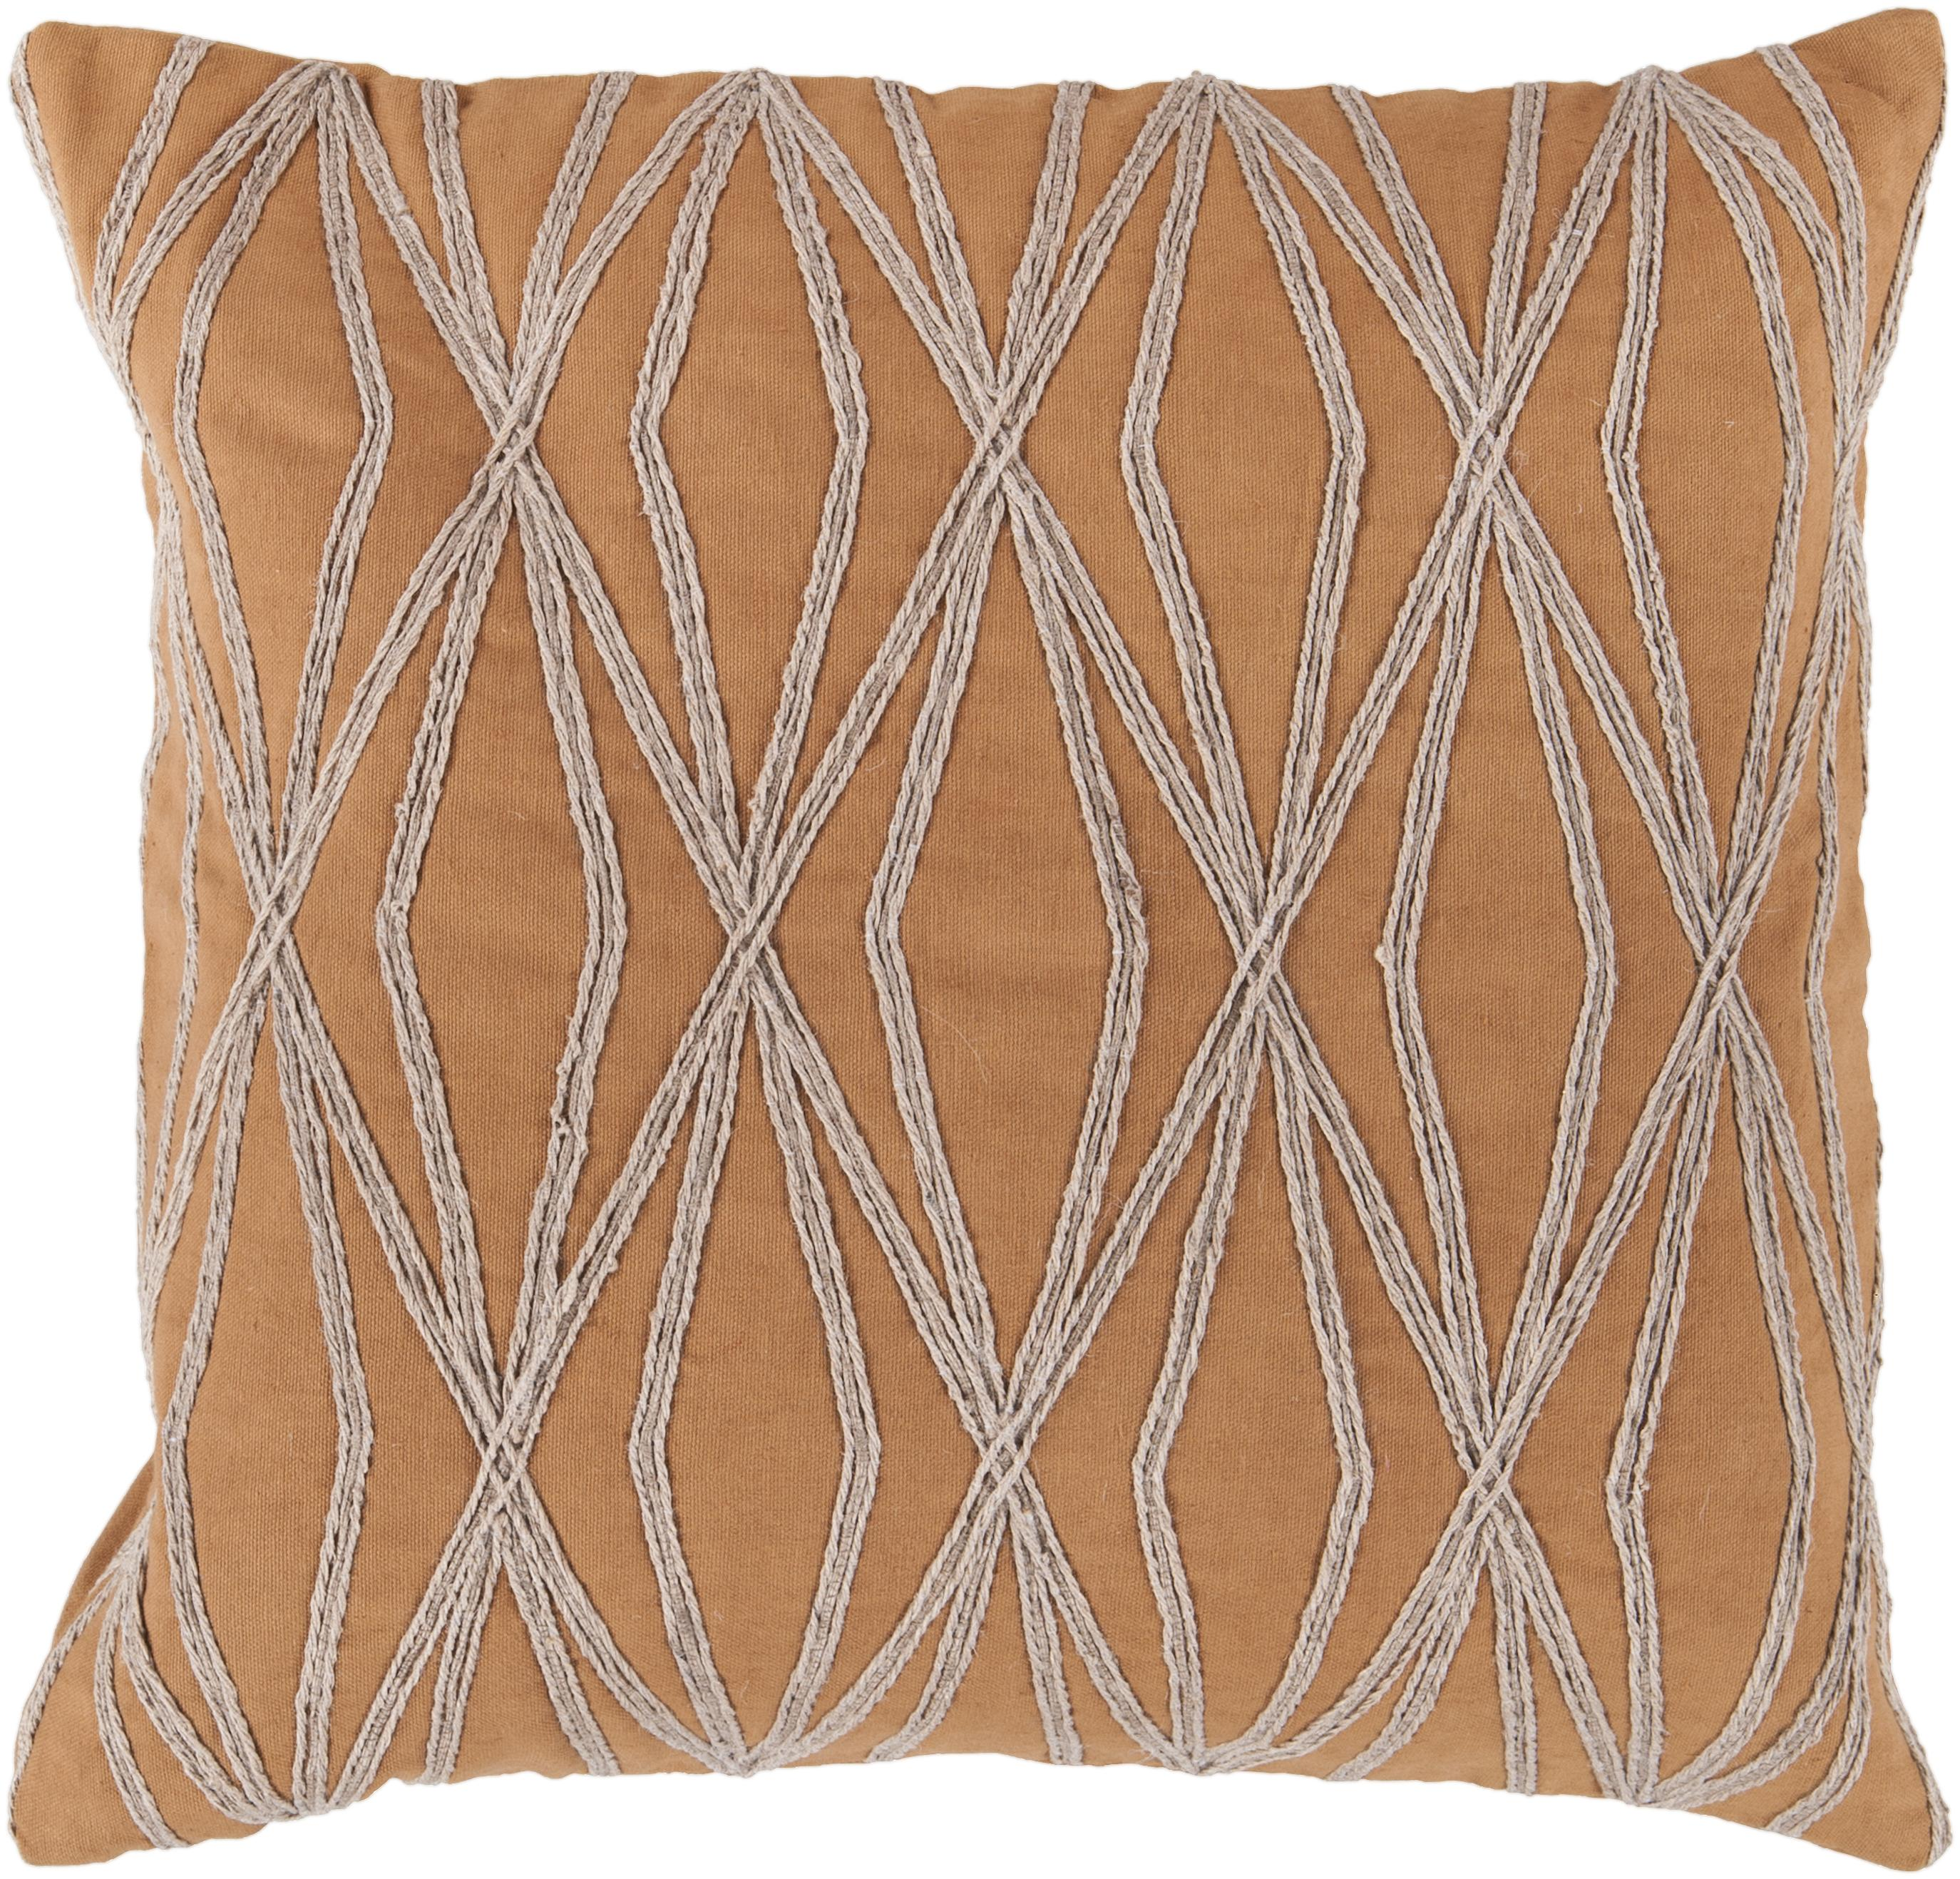 "Pillows 22"" x 22"" Pillow by Surya at Belfort Furniture"